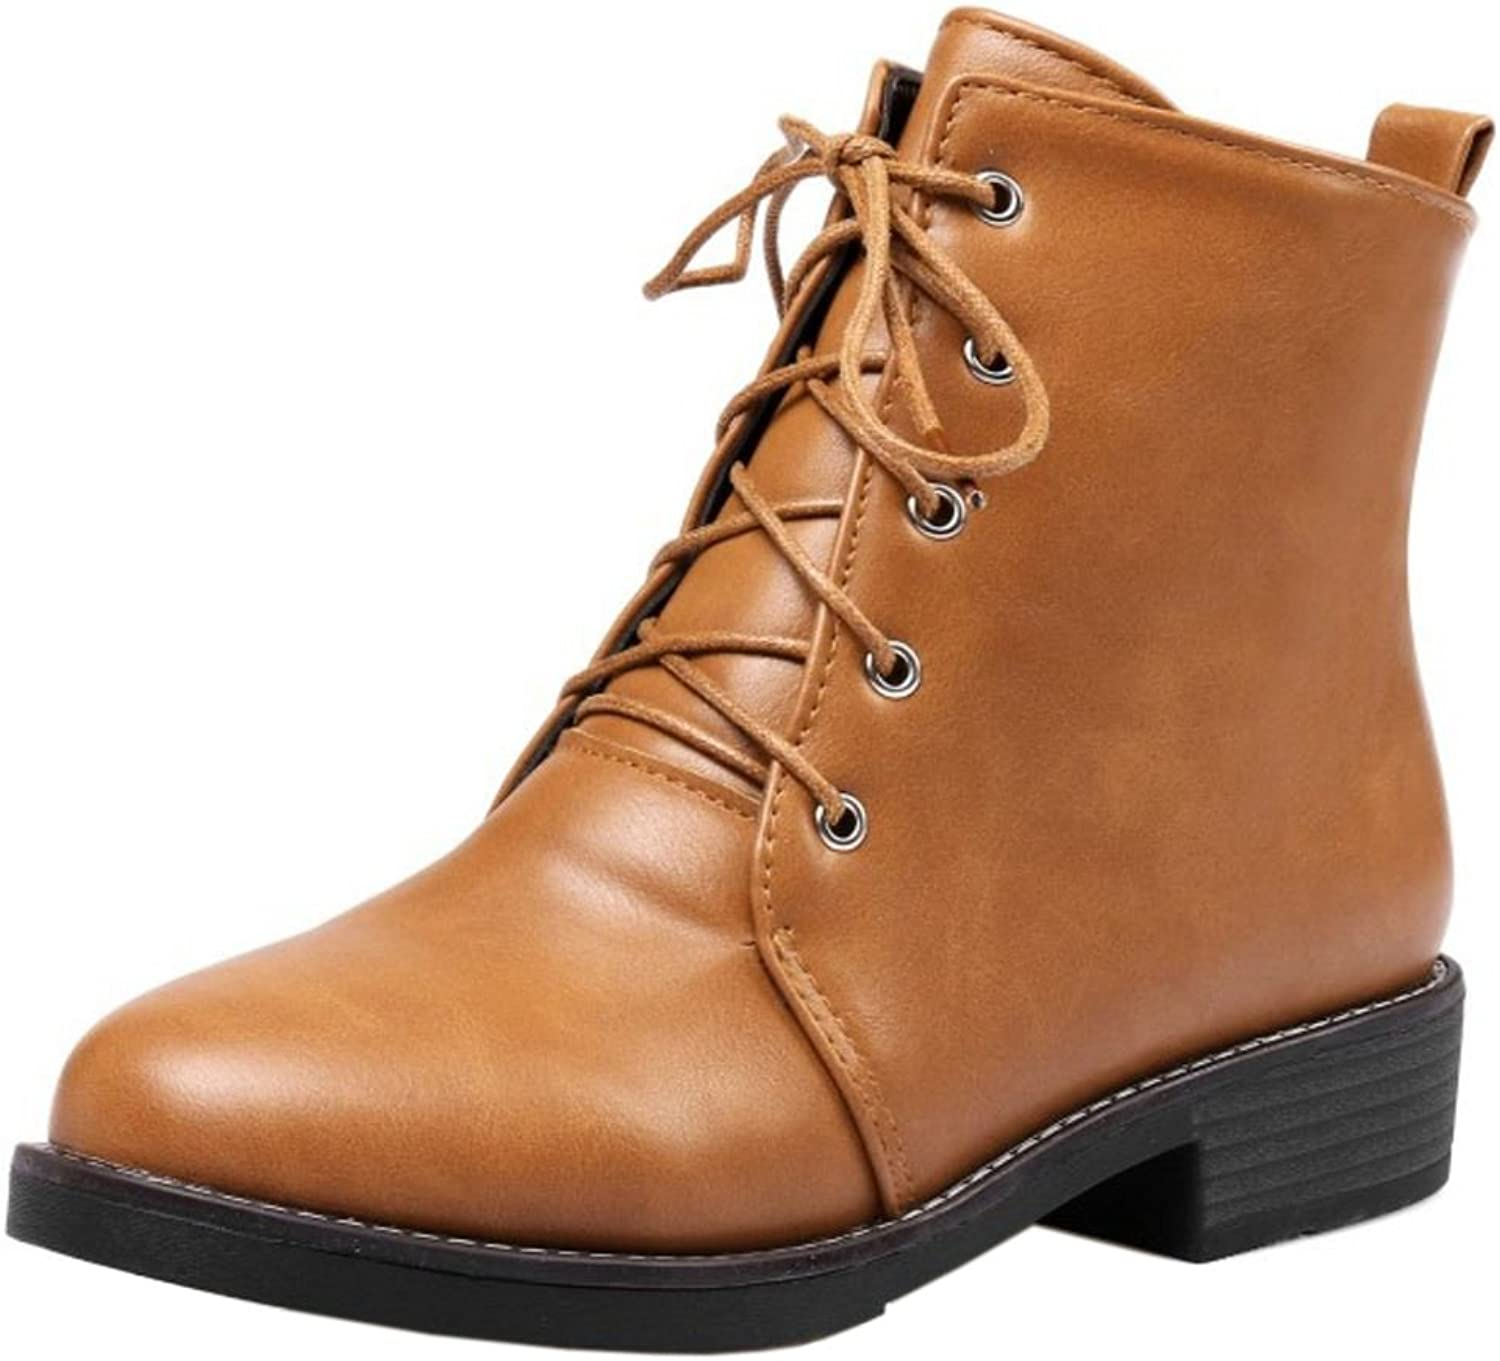 Cular Acci Women Martin Boots Lace Up